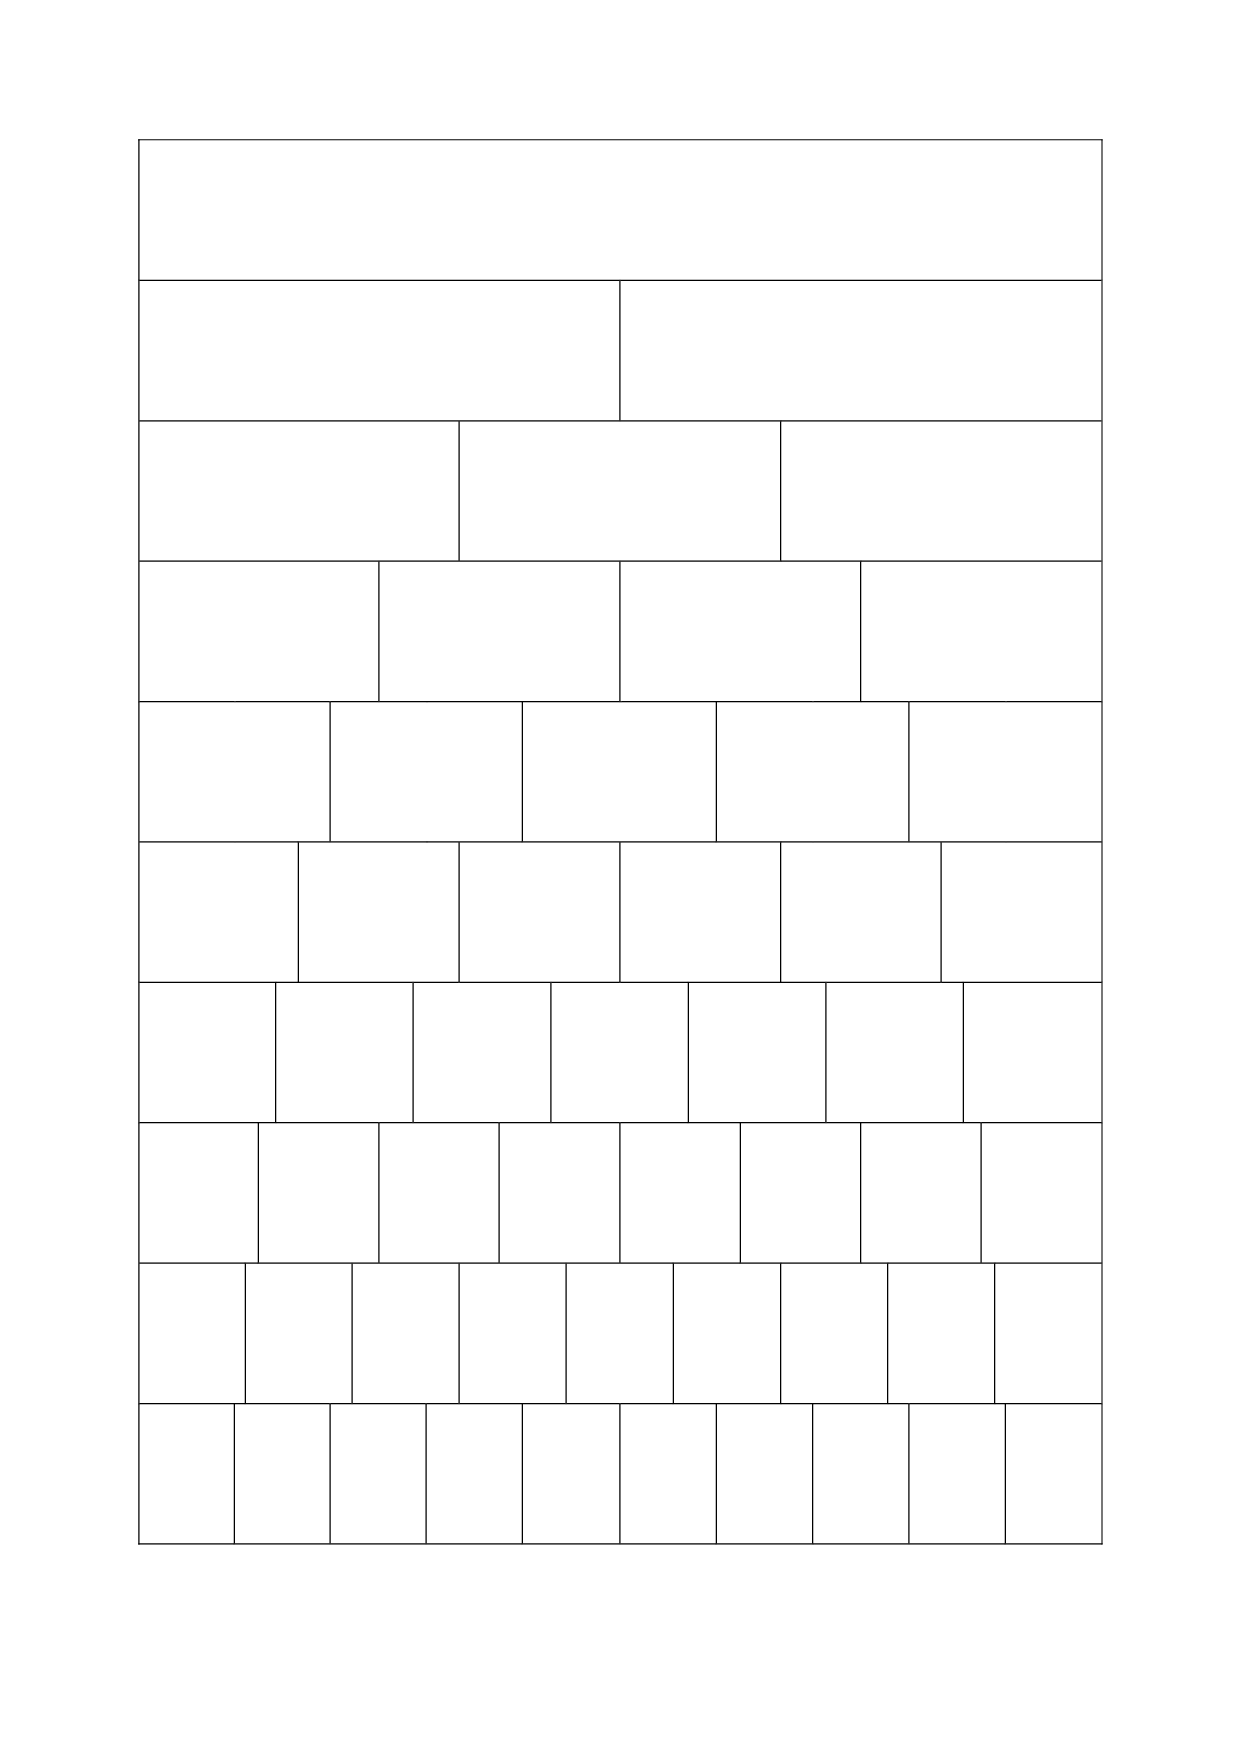 Fraction wall worksheet intro to fractions using lego by for Blank word wall template free